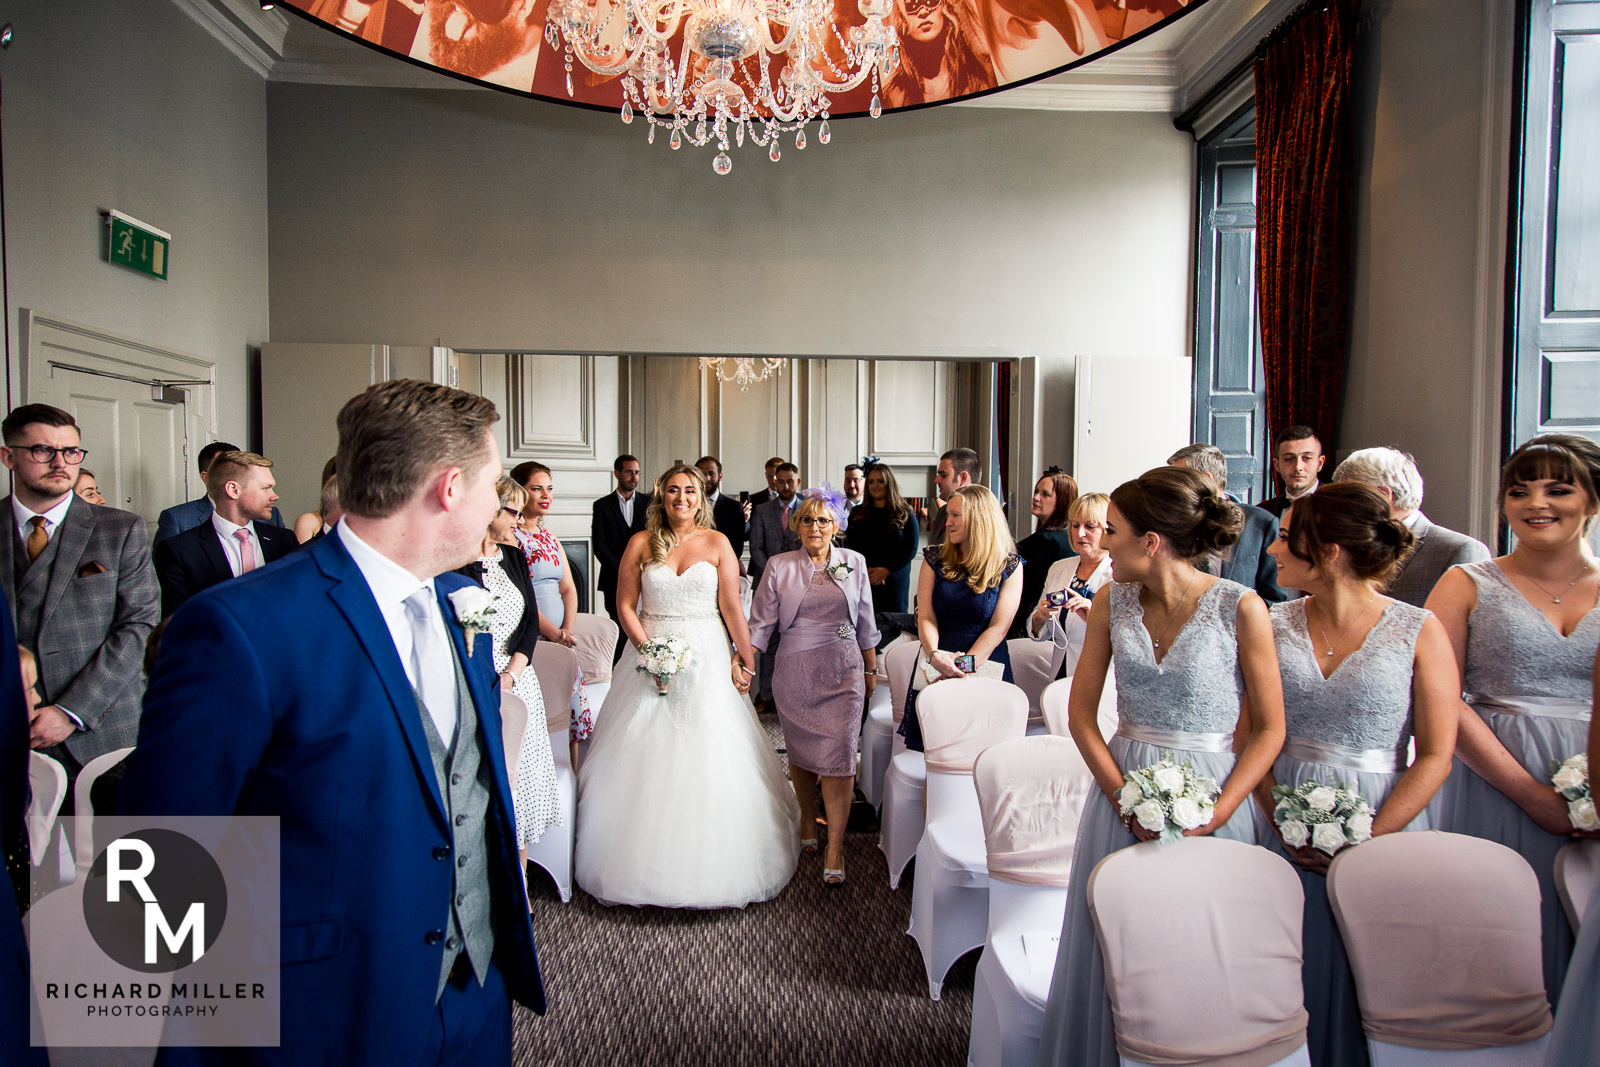 Dale Natalie Web 101 - An Awesome Chester Wedding at Oddfellows